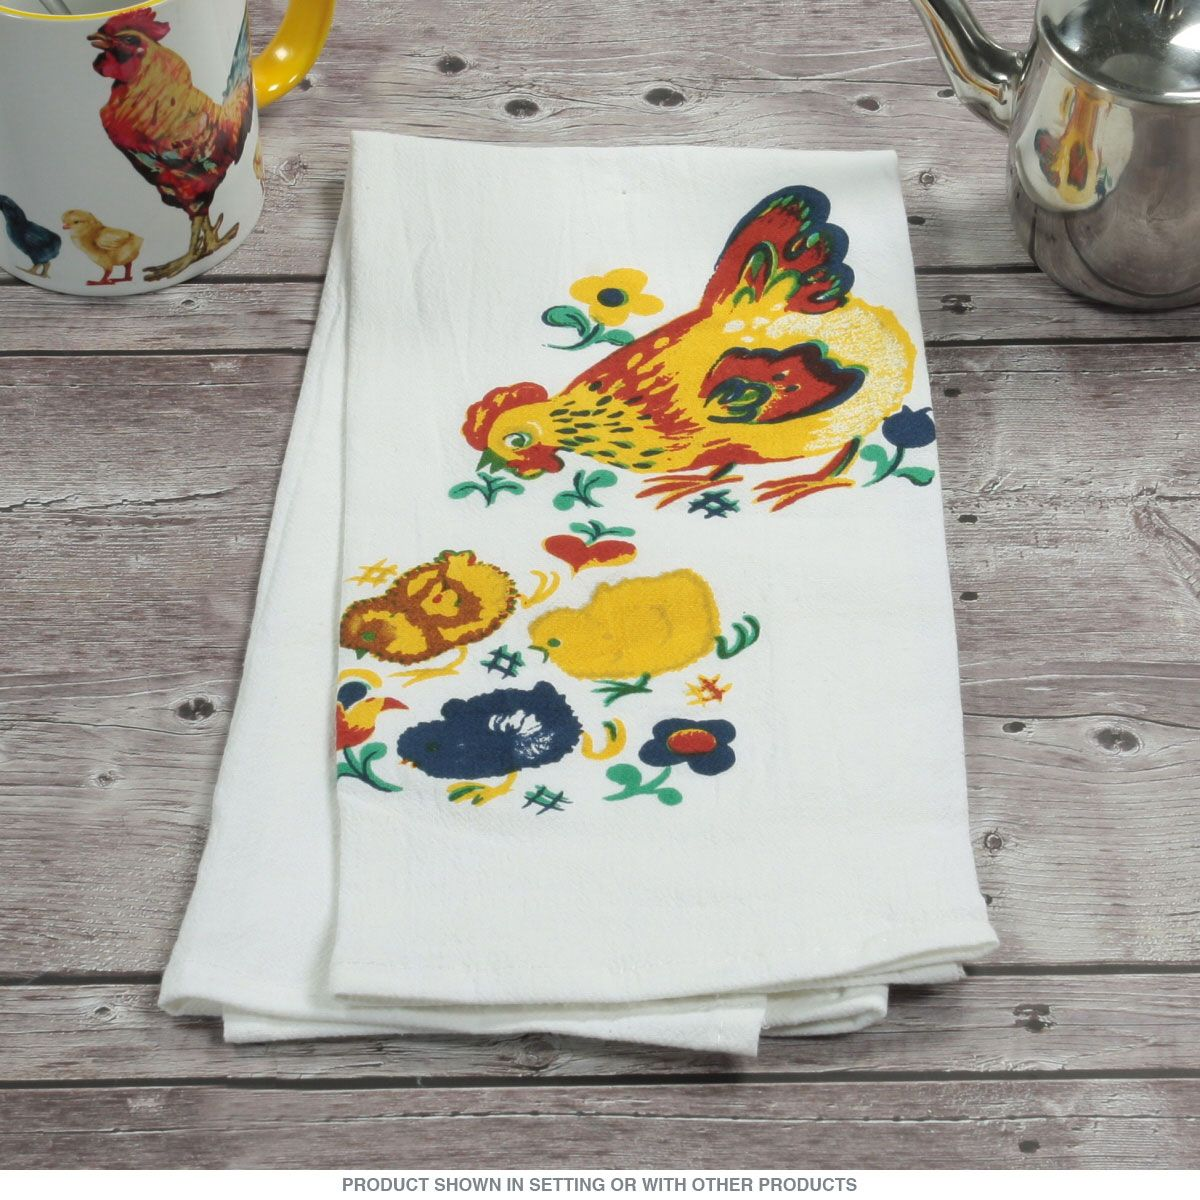 A Classic Cotton Kitchen Towel With A Vintage Inspired Farmhouse Design.  This Screen Printed